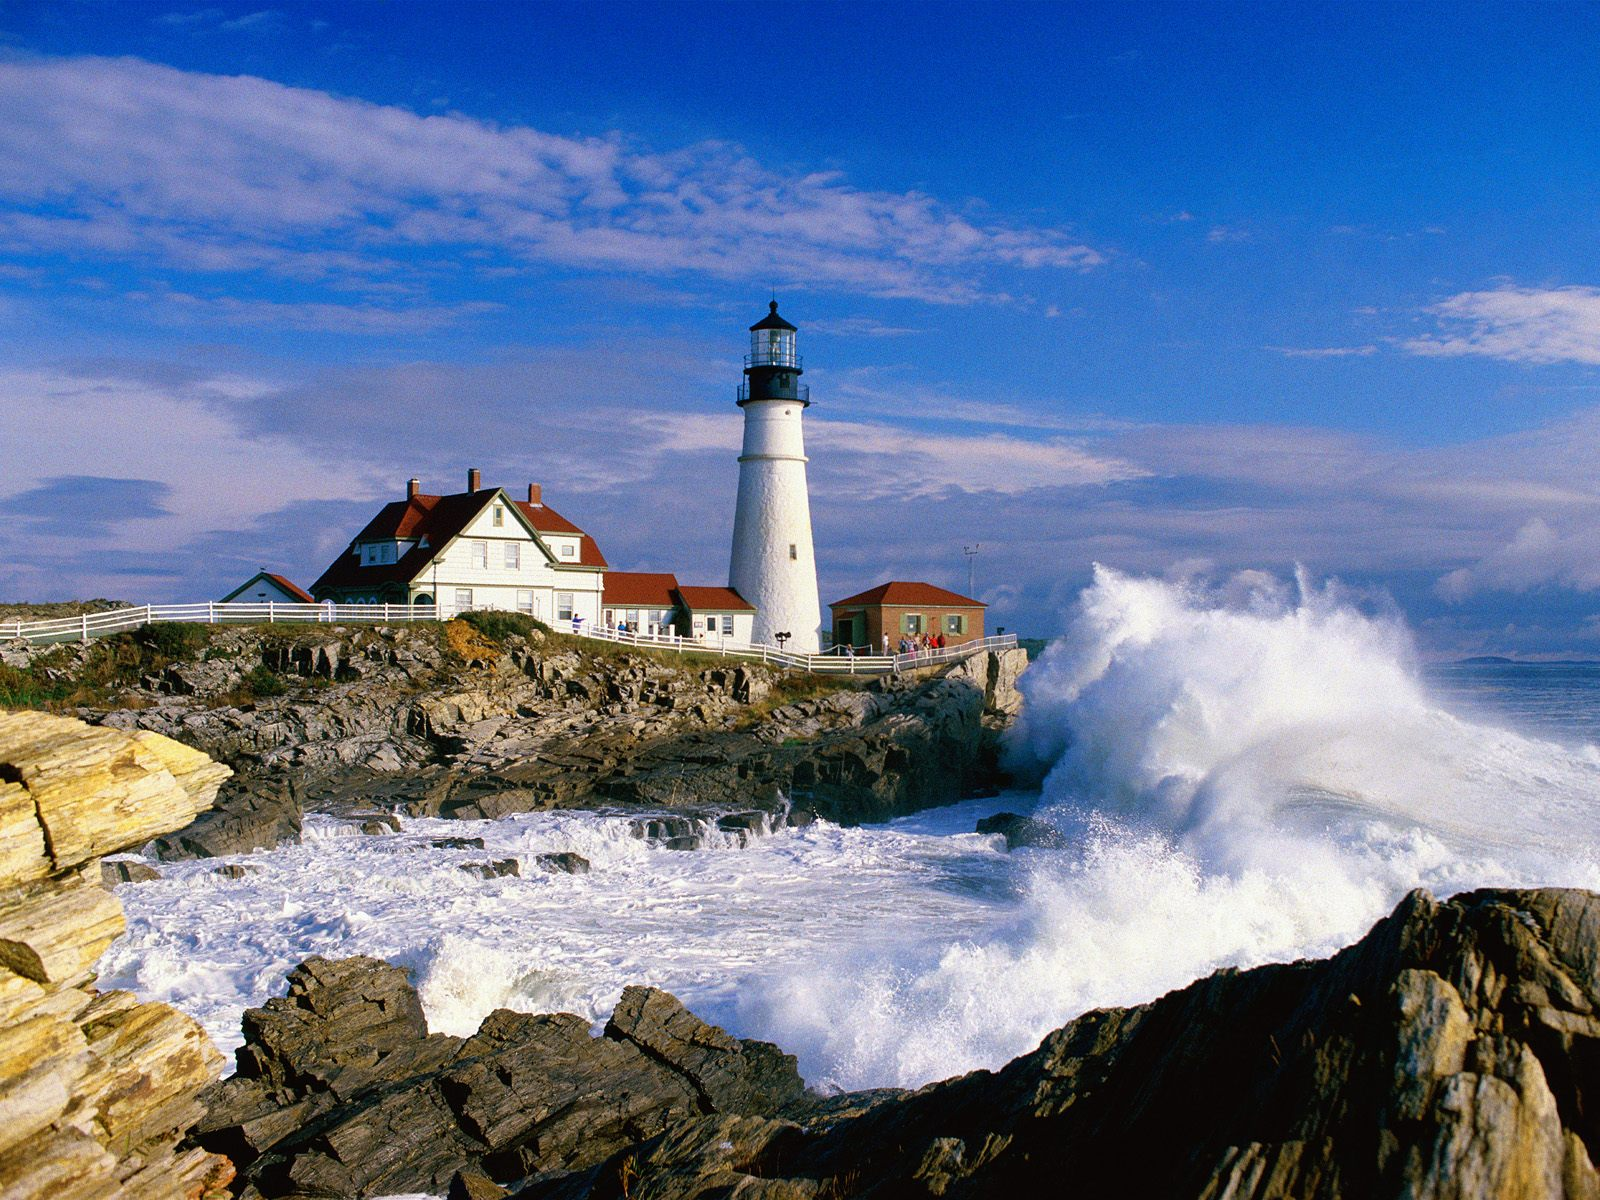 Portland Head Light4744819513 - Portland Head Light - York, Portland, Light, Head